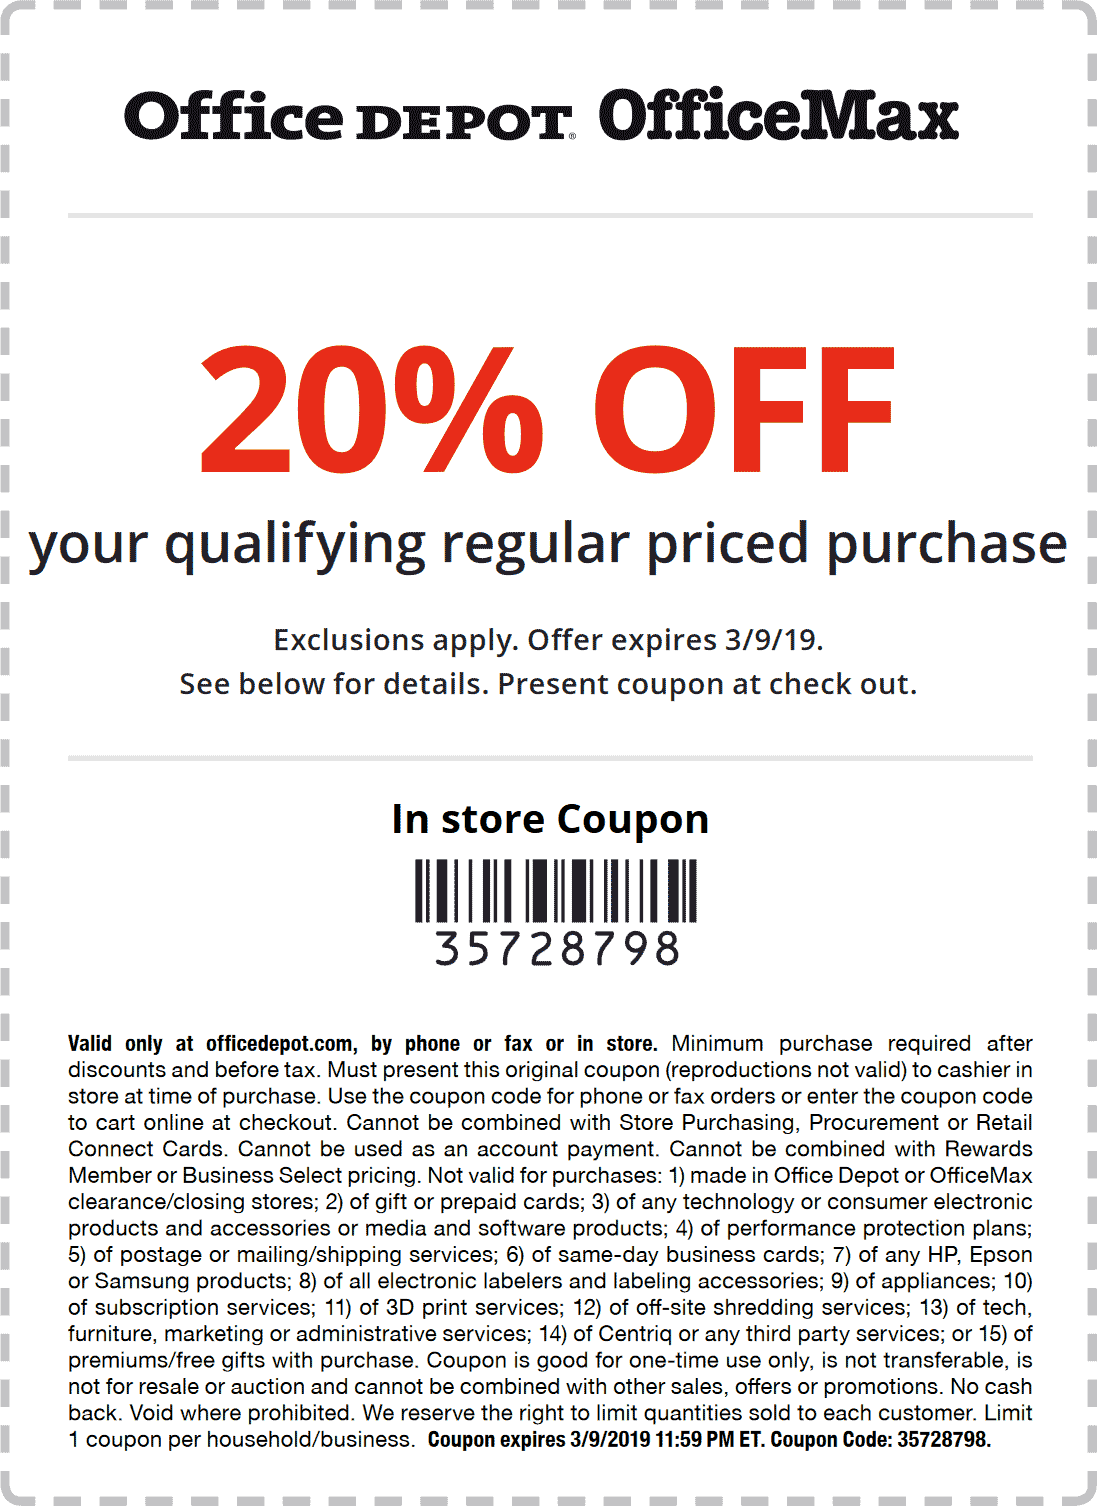 Office Depot Coupon January 2020 20% off at Office Depot & OfficeMax, or online via promo code 35728798